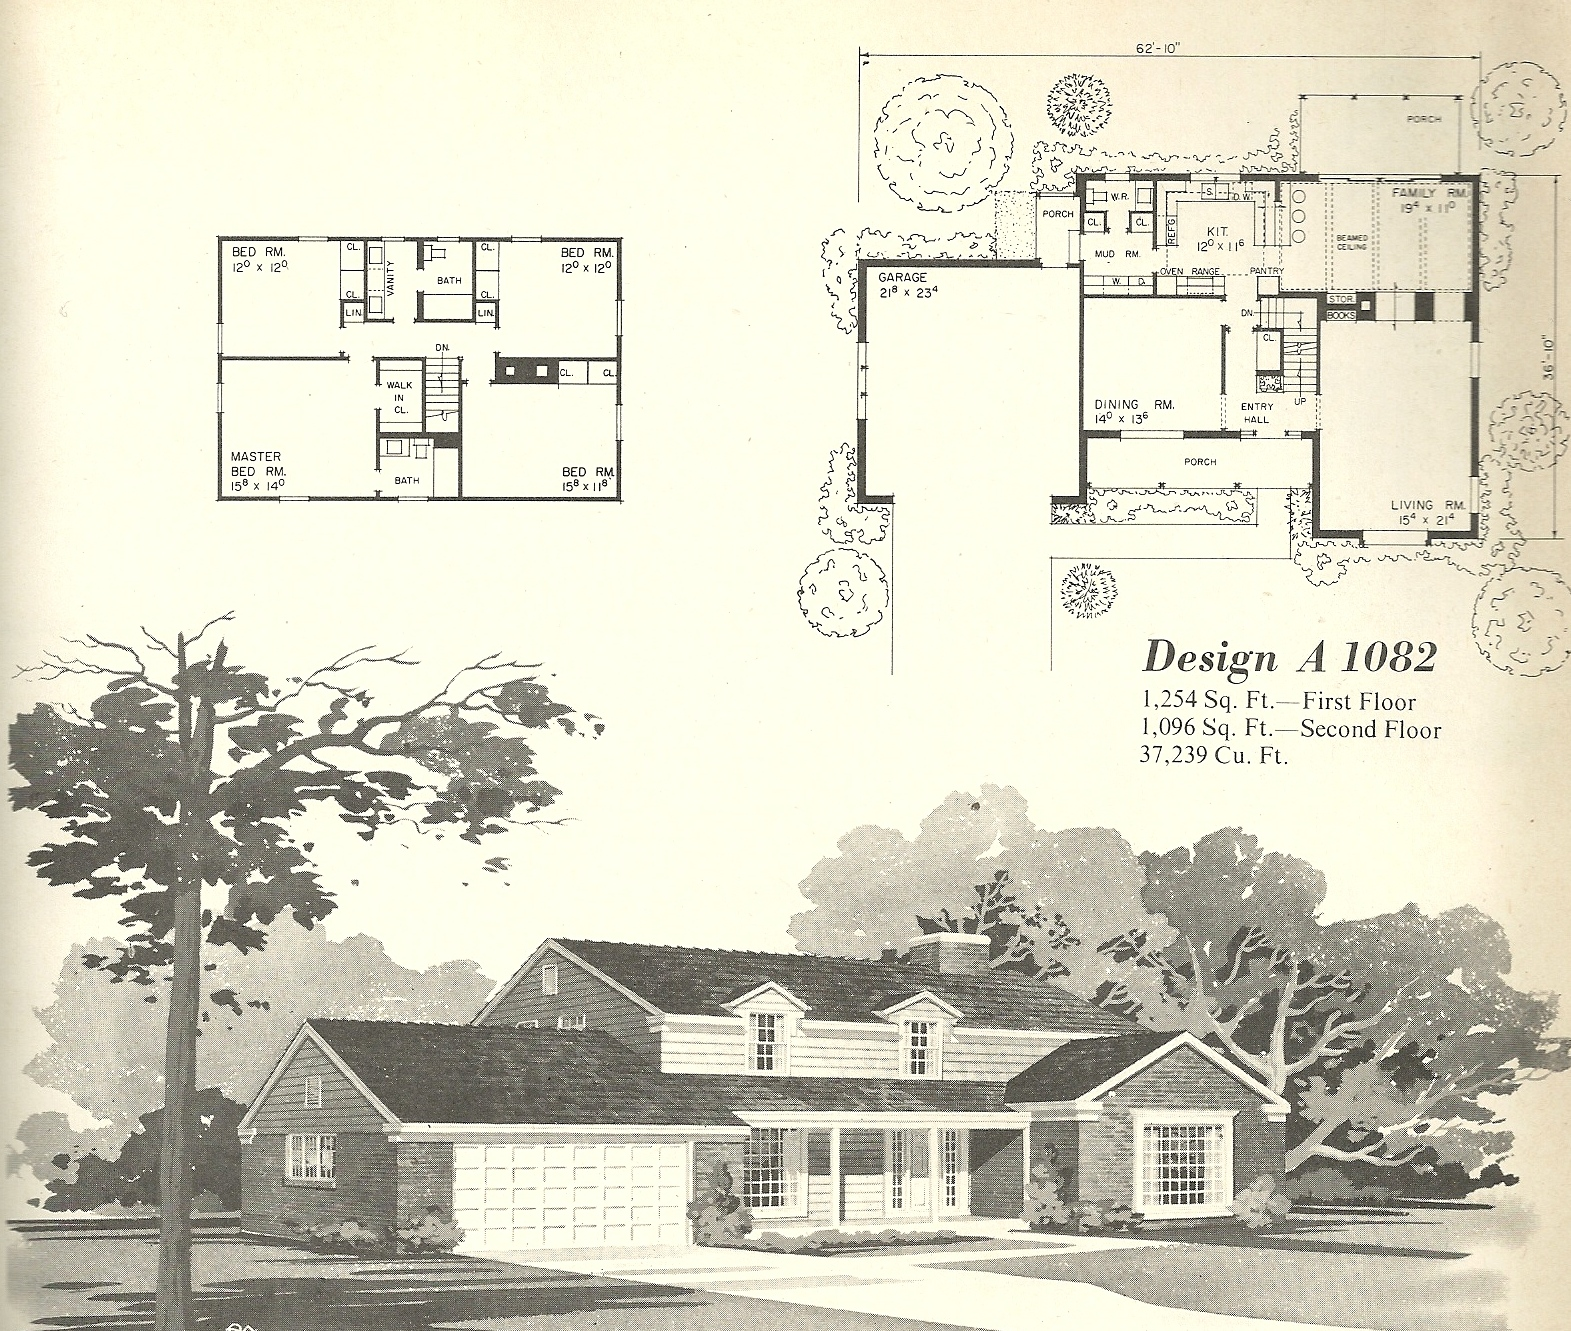 Vintage house plans 1082 antique alter ego for Vintage floor plans